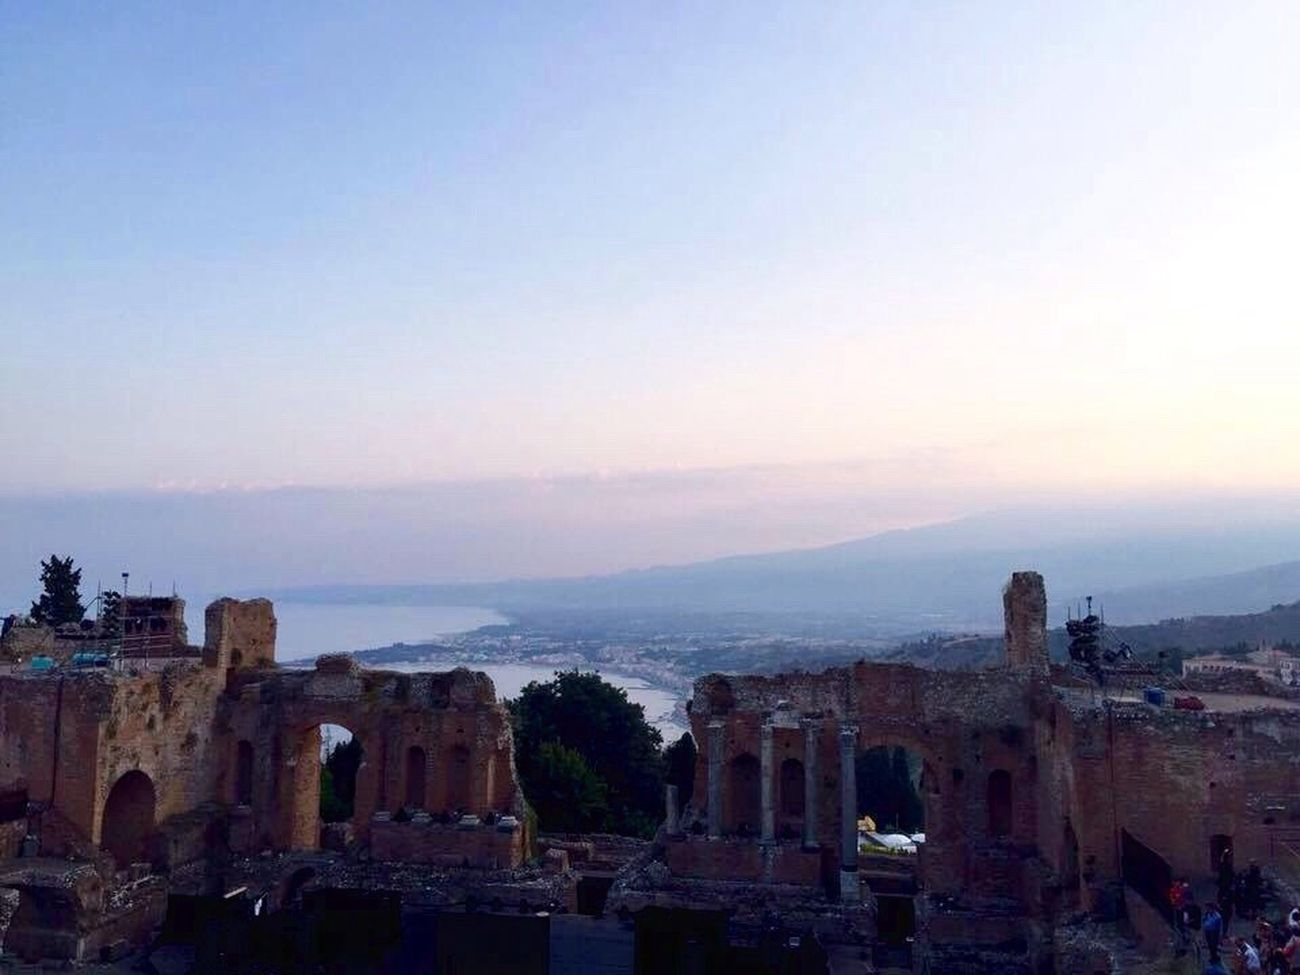 Old Ruin Architecture Ancient Civilization Ancient Ruins Ancient Theatre Outdoors Travel Destinations Etna Volcano Sea Sea And Sky Sunset Taormina Taormina And Etna Taormina Ruins Taormina, Sicily 🇮🇹 Mediterranean  Mediterranean Sea The Architect - 2017 EyeEm Awards The Great Outdoors - 2017 EyeEm Awards